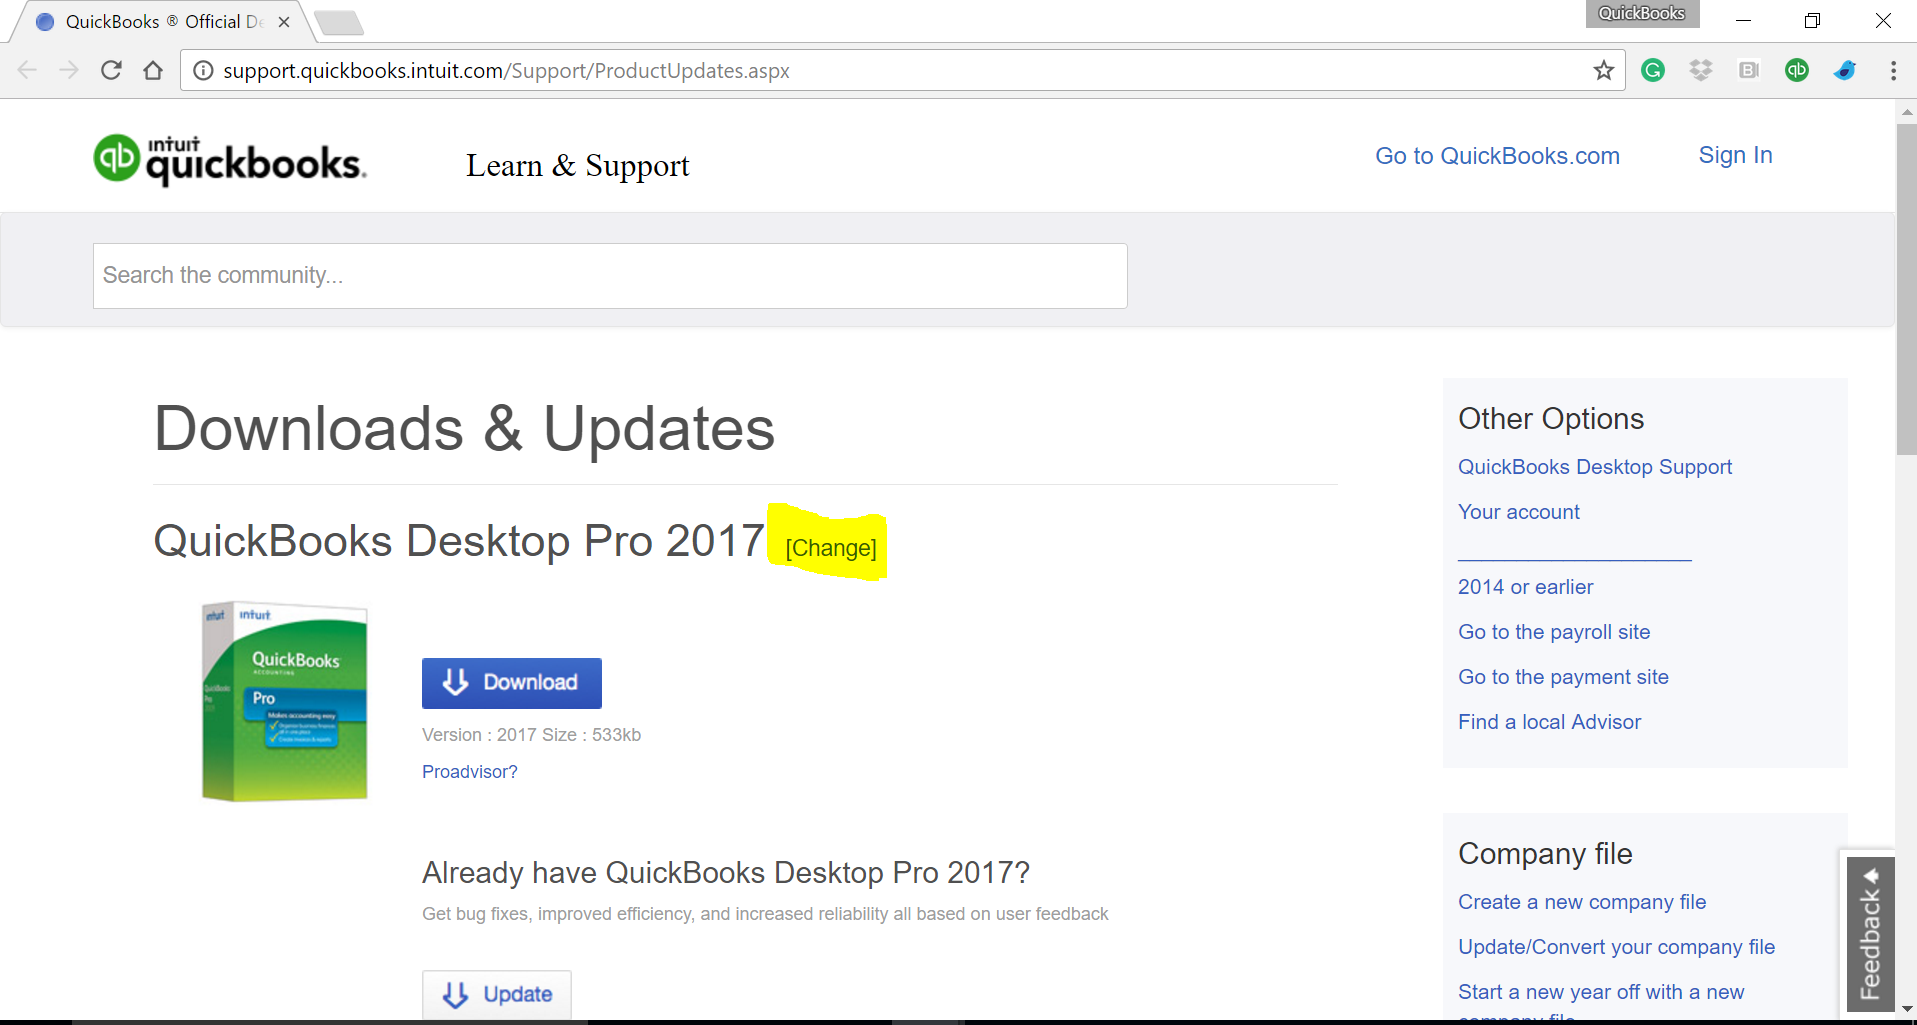 How to reinstall quickbooks desktop 2016 2015 2014 or older be sure to have the license number and product number ready to install downloads updates httpsupportquickbooks uitsupportproductupdatespx ccuart Choice Image